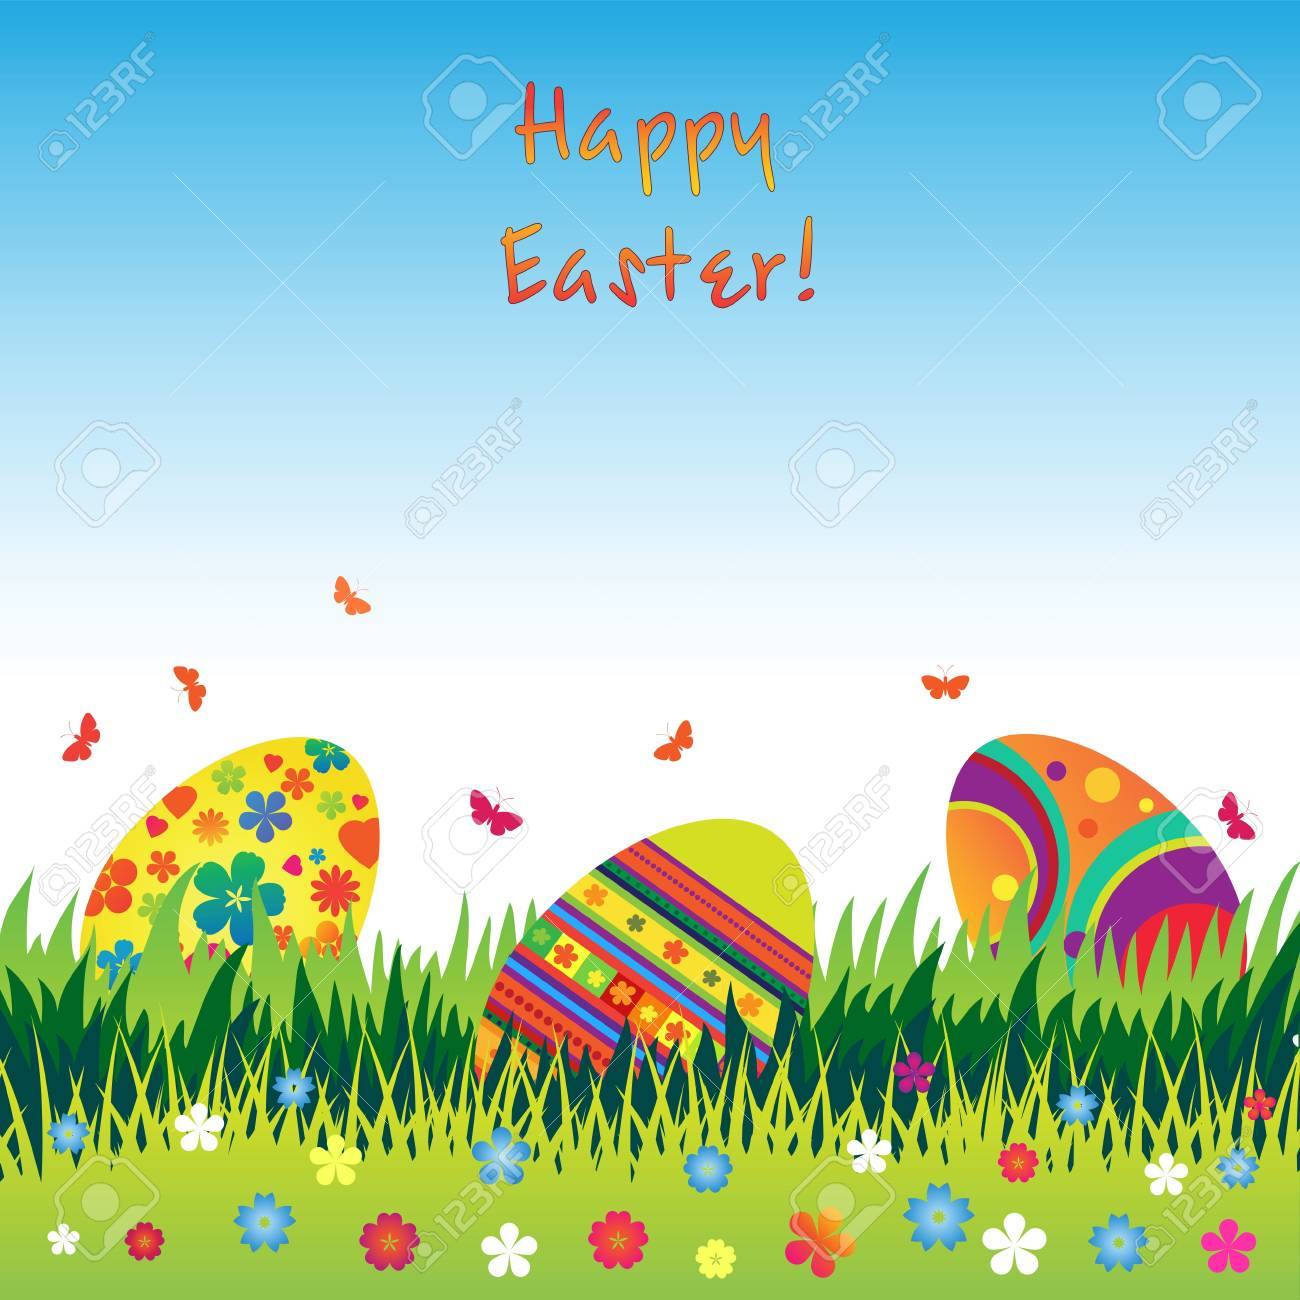 Easter eggs in the grass with butterflies and flowers. Stock Vector - 9242182